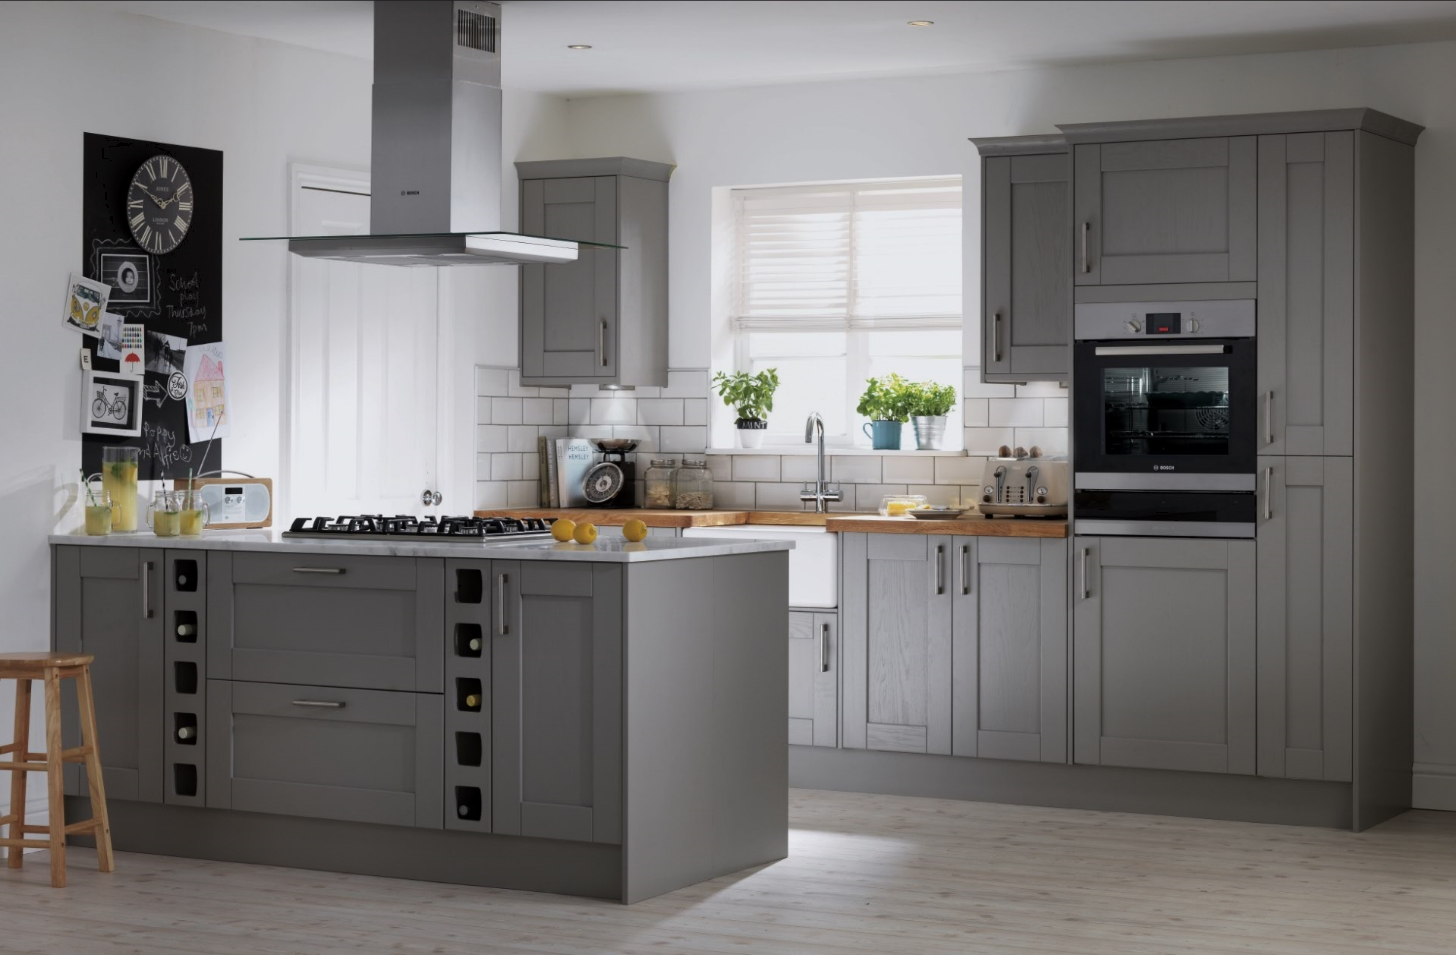 kitchen design homebase arundel kitchen from homebase